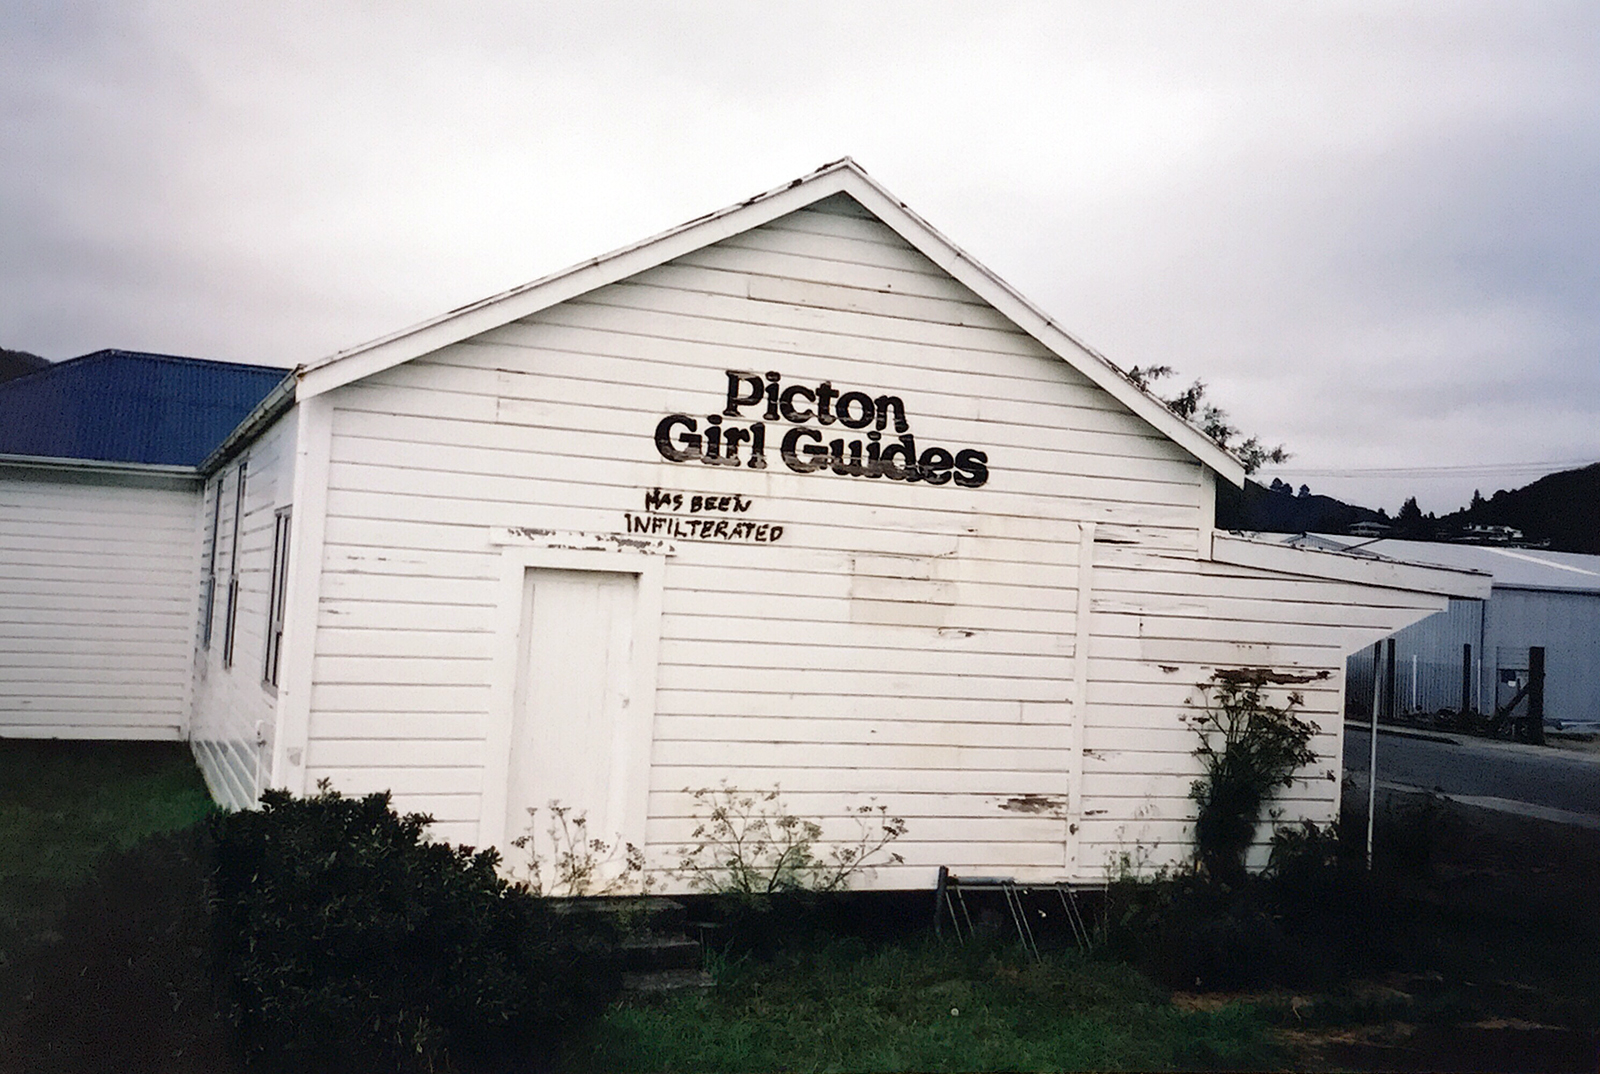 Picton Girl Guides Has Been Infilterated, Picton, New Zealand 2003 © Tanya Clarke